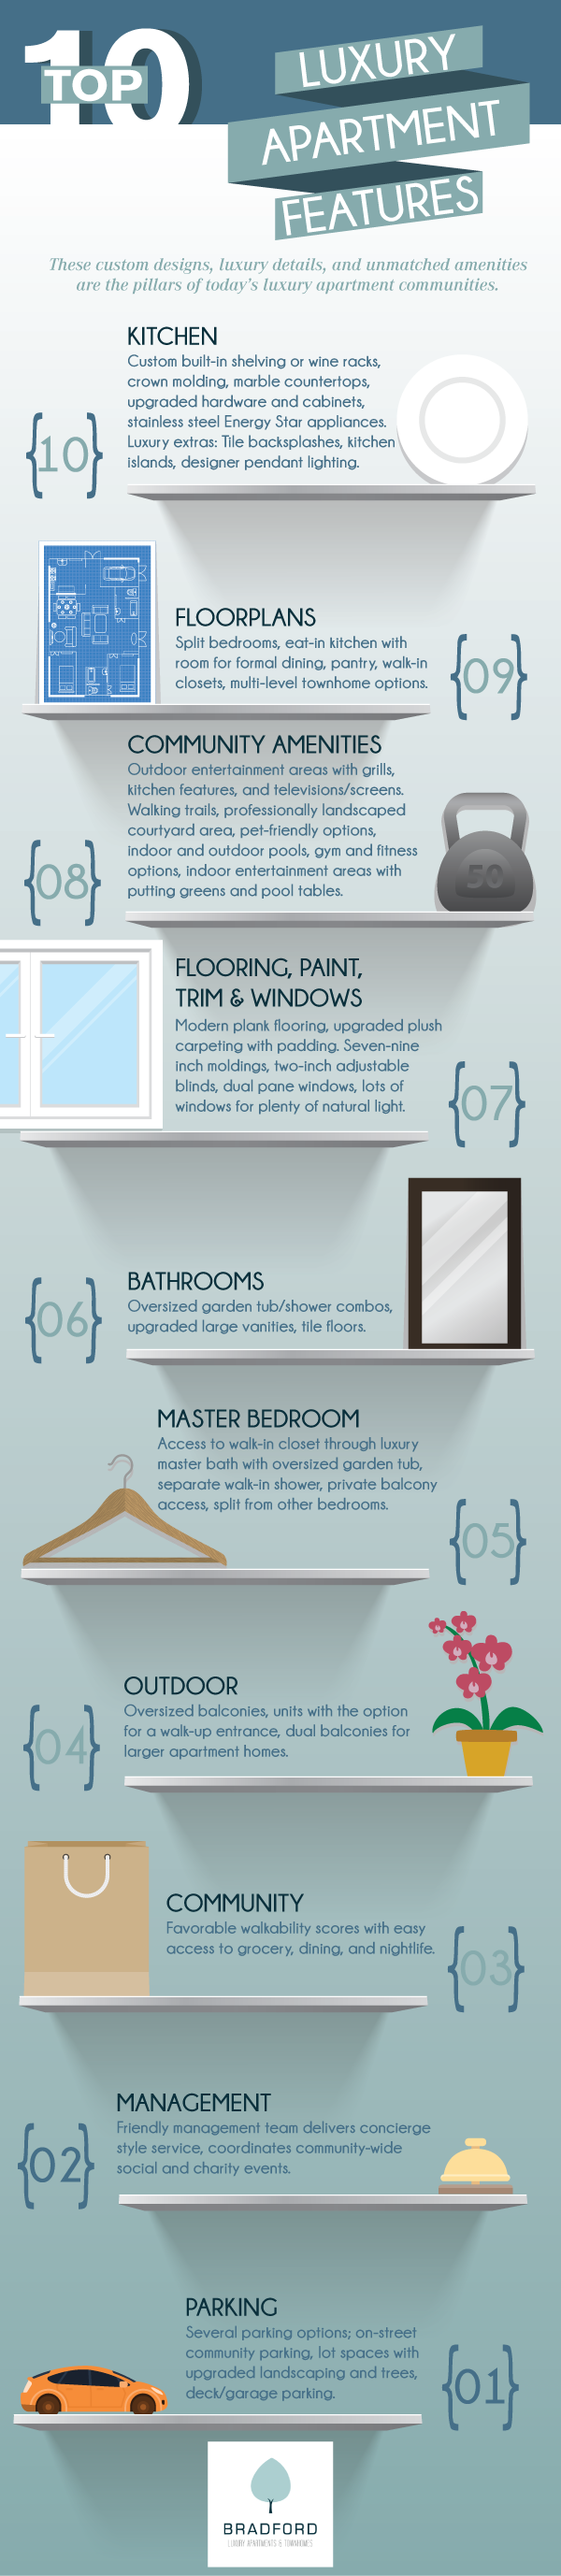 Top 10 Luxury Apartment Features Infographic